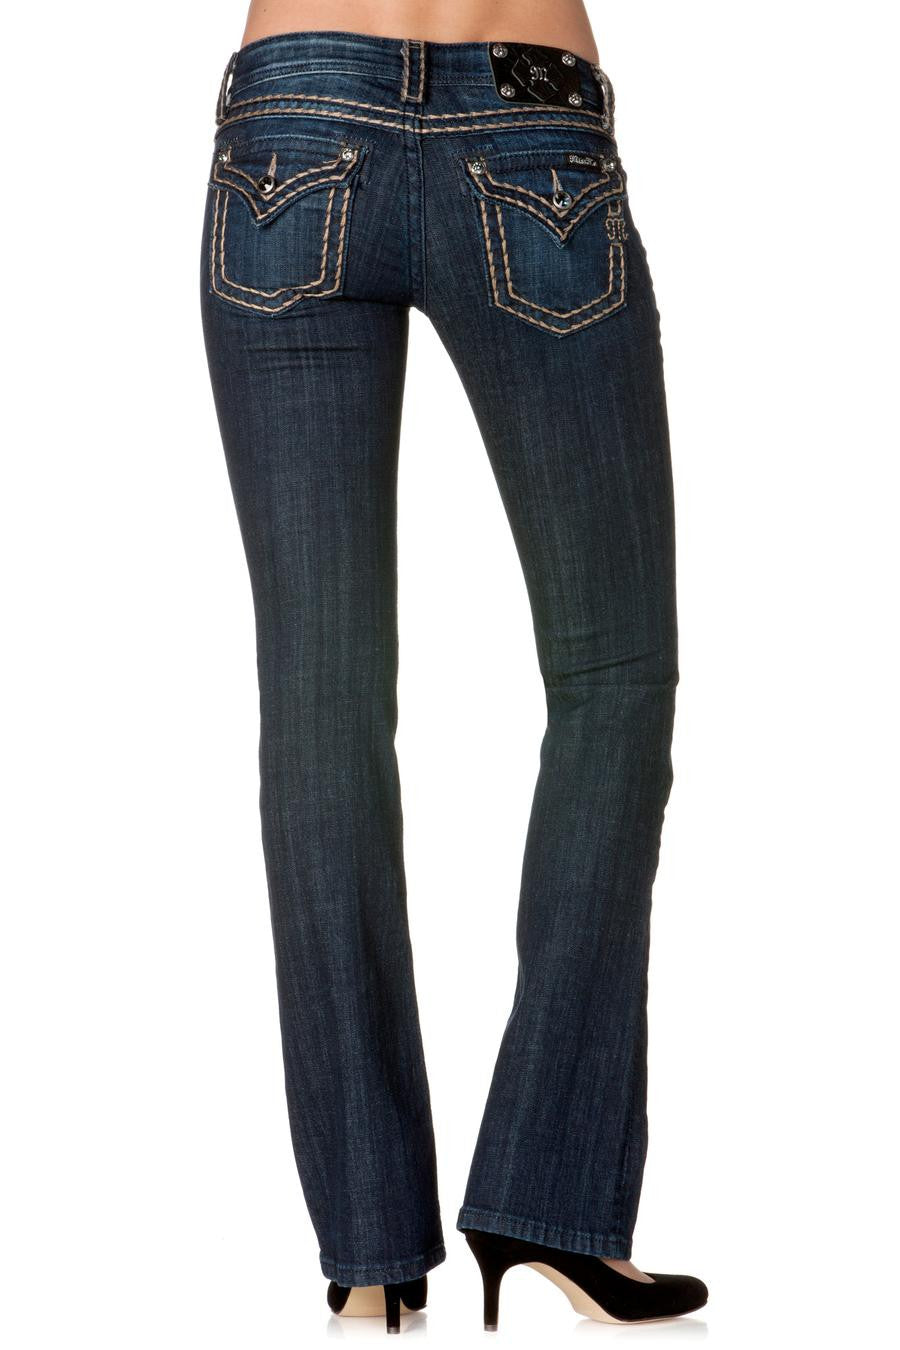 Miss Me: Britney Boot-Cut Denim, Dark Blue